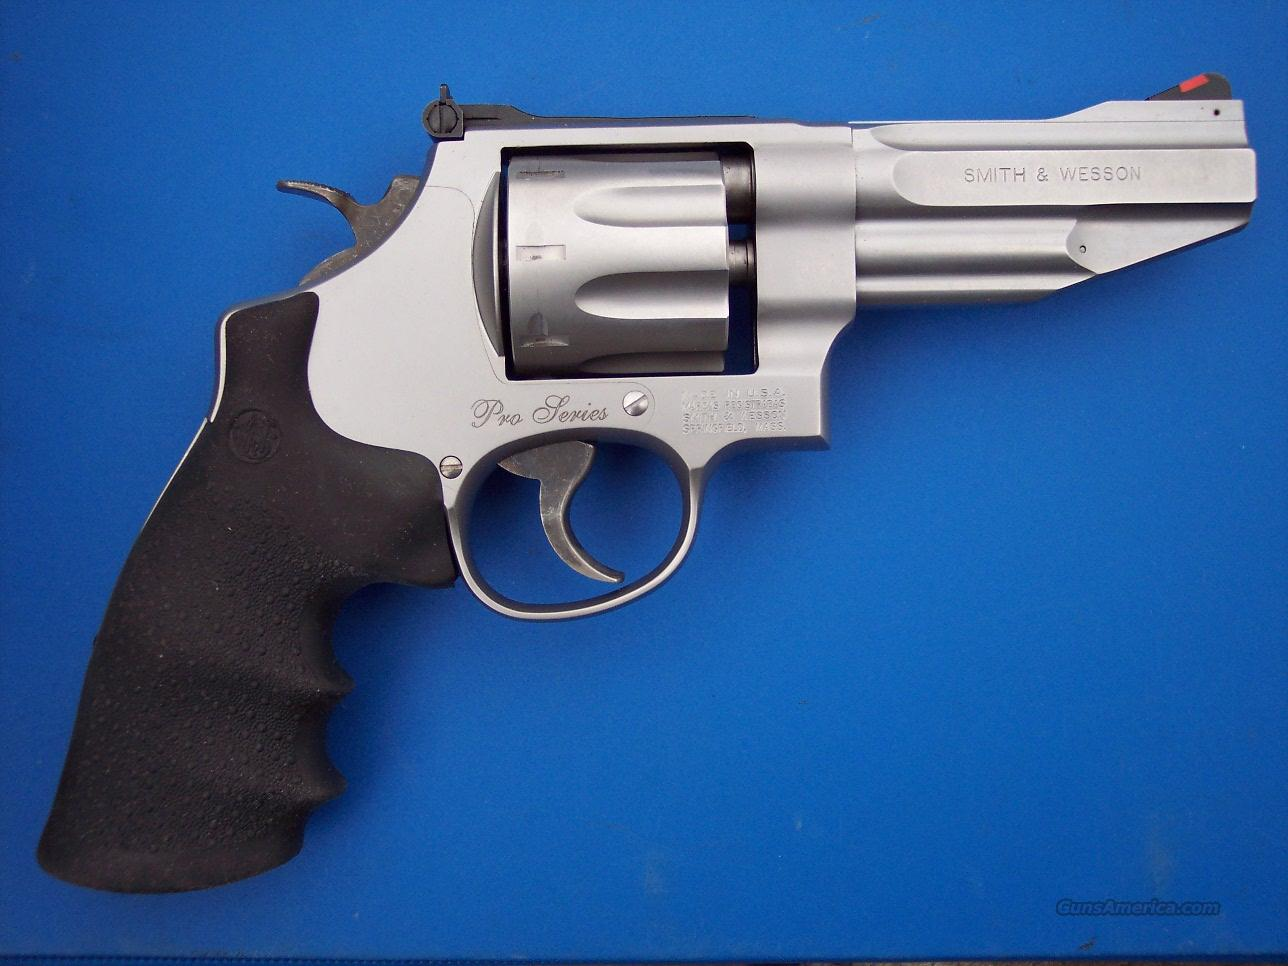 "Smith & Wesson 627 Pro Series 8 shot .357 Mag 4"" SS *NEW* 178014  Guns > Pistols > Smith & Wesson Revolvers > Performance Center"